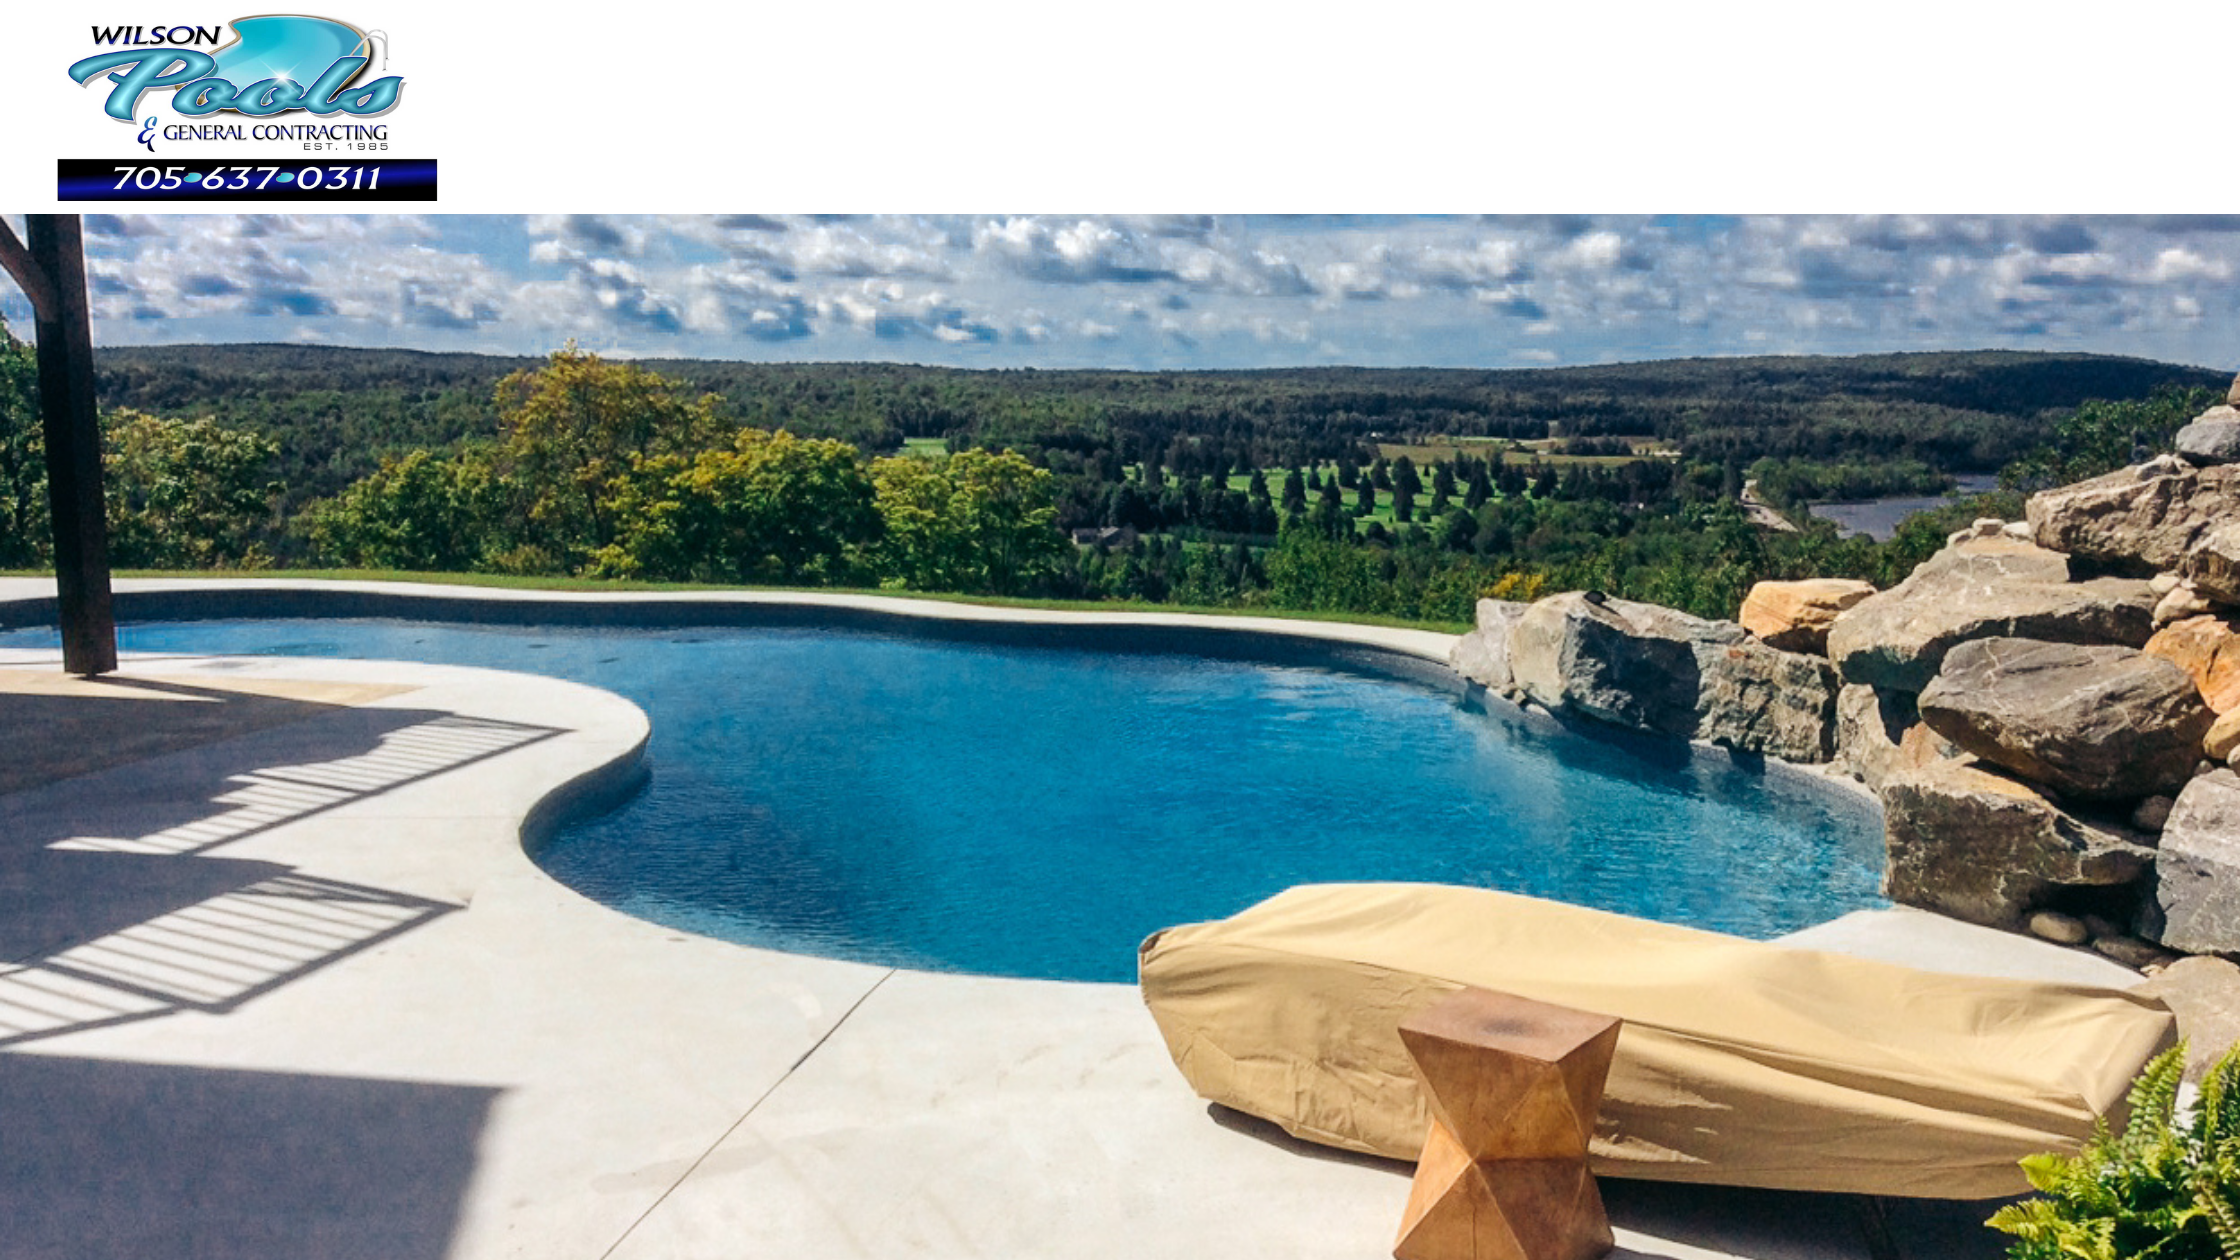 Wilson Pools and Contracting